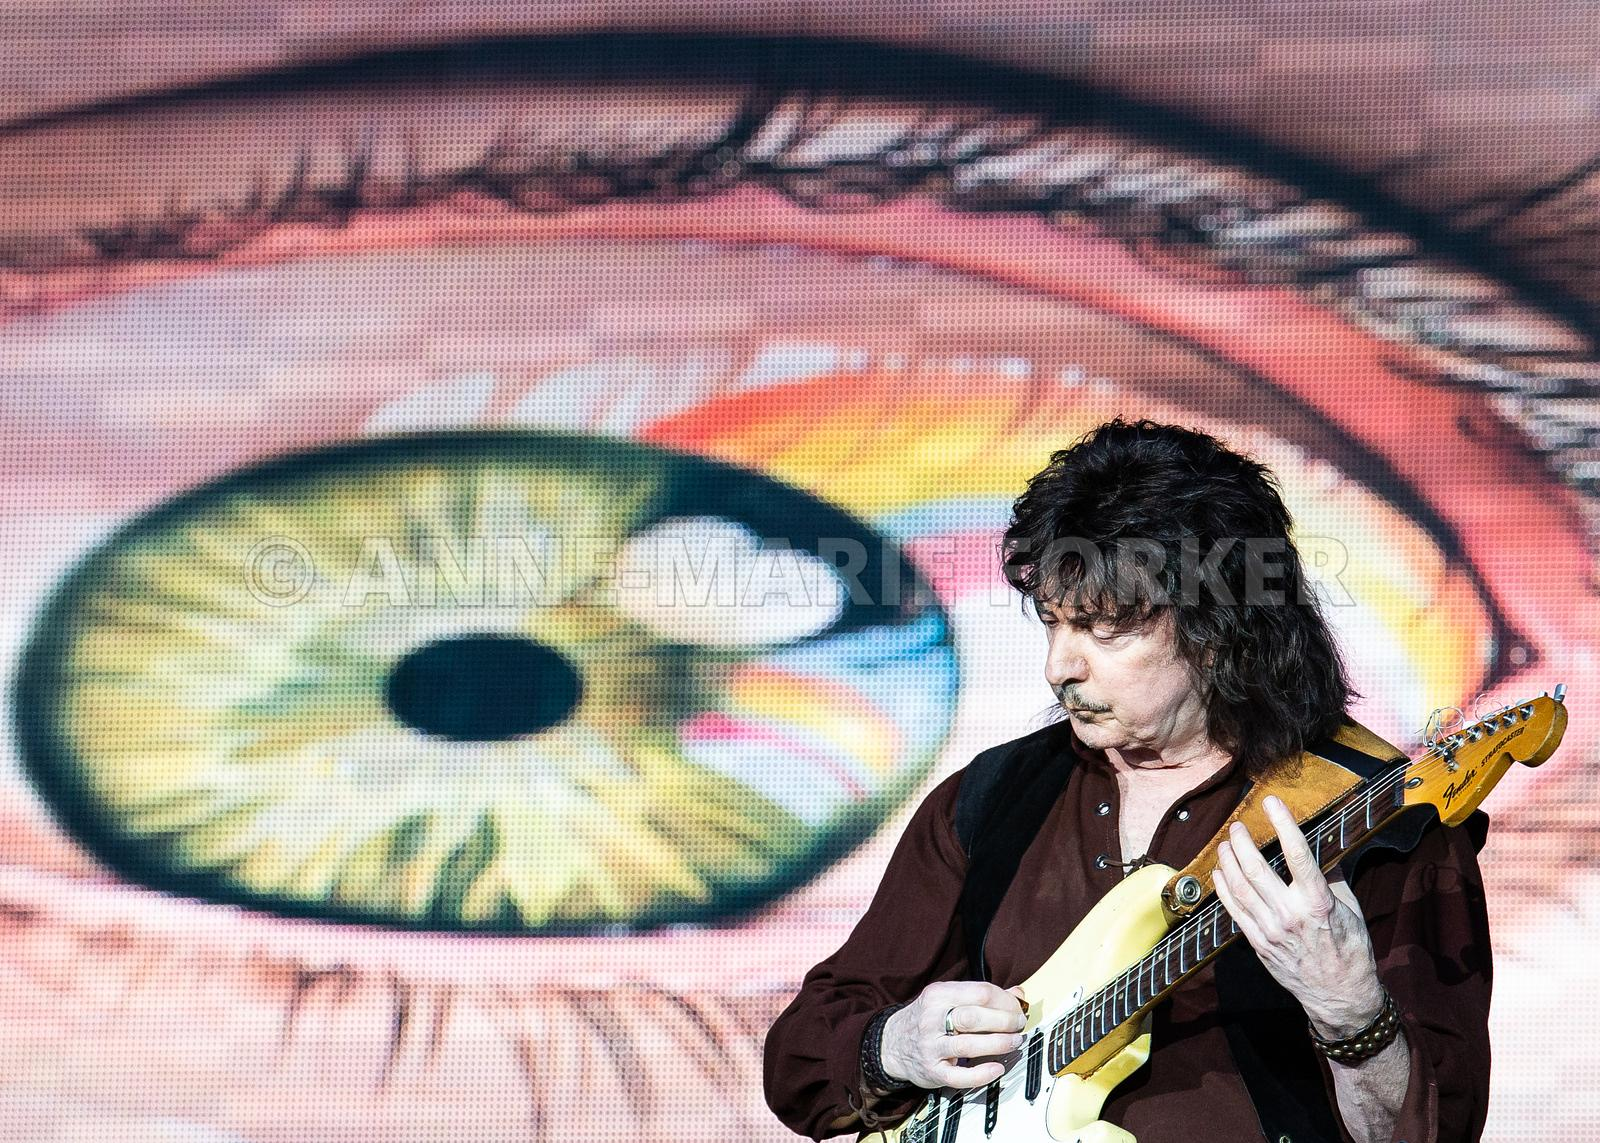 Ritchie_Blackmore_by_Anne-Marie_Forker-2398